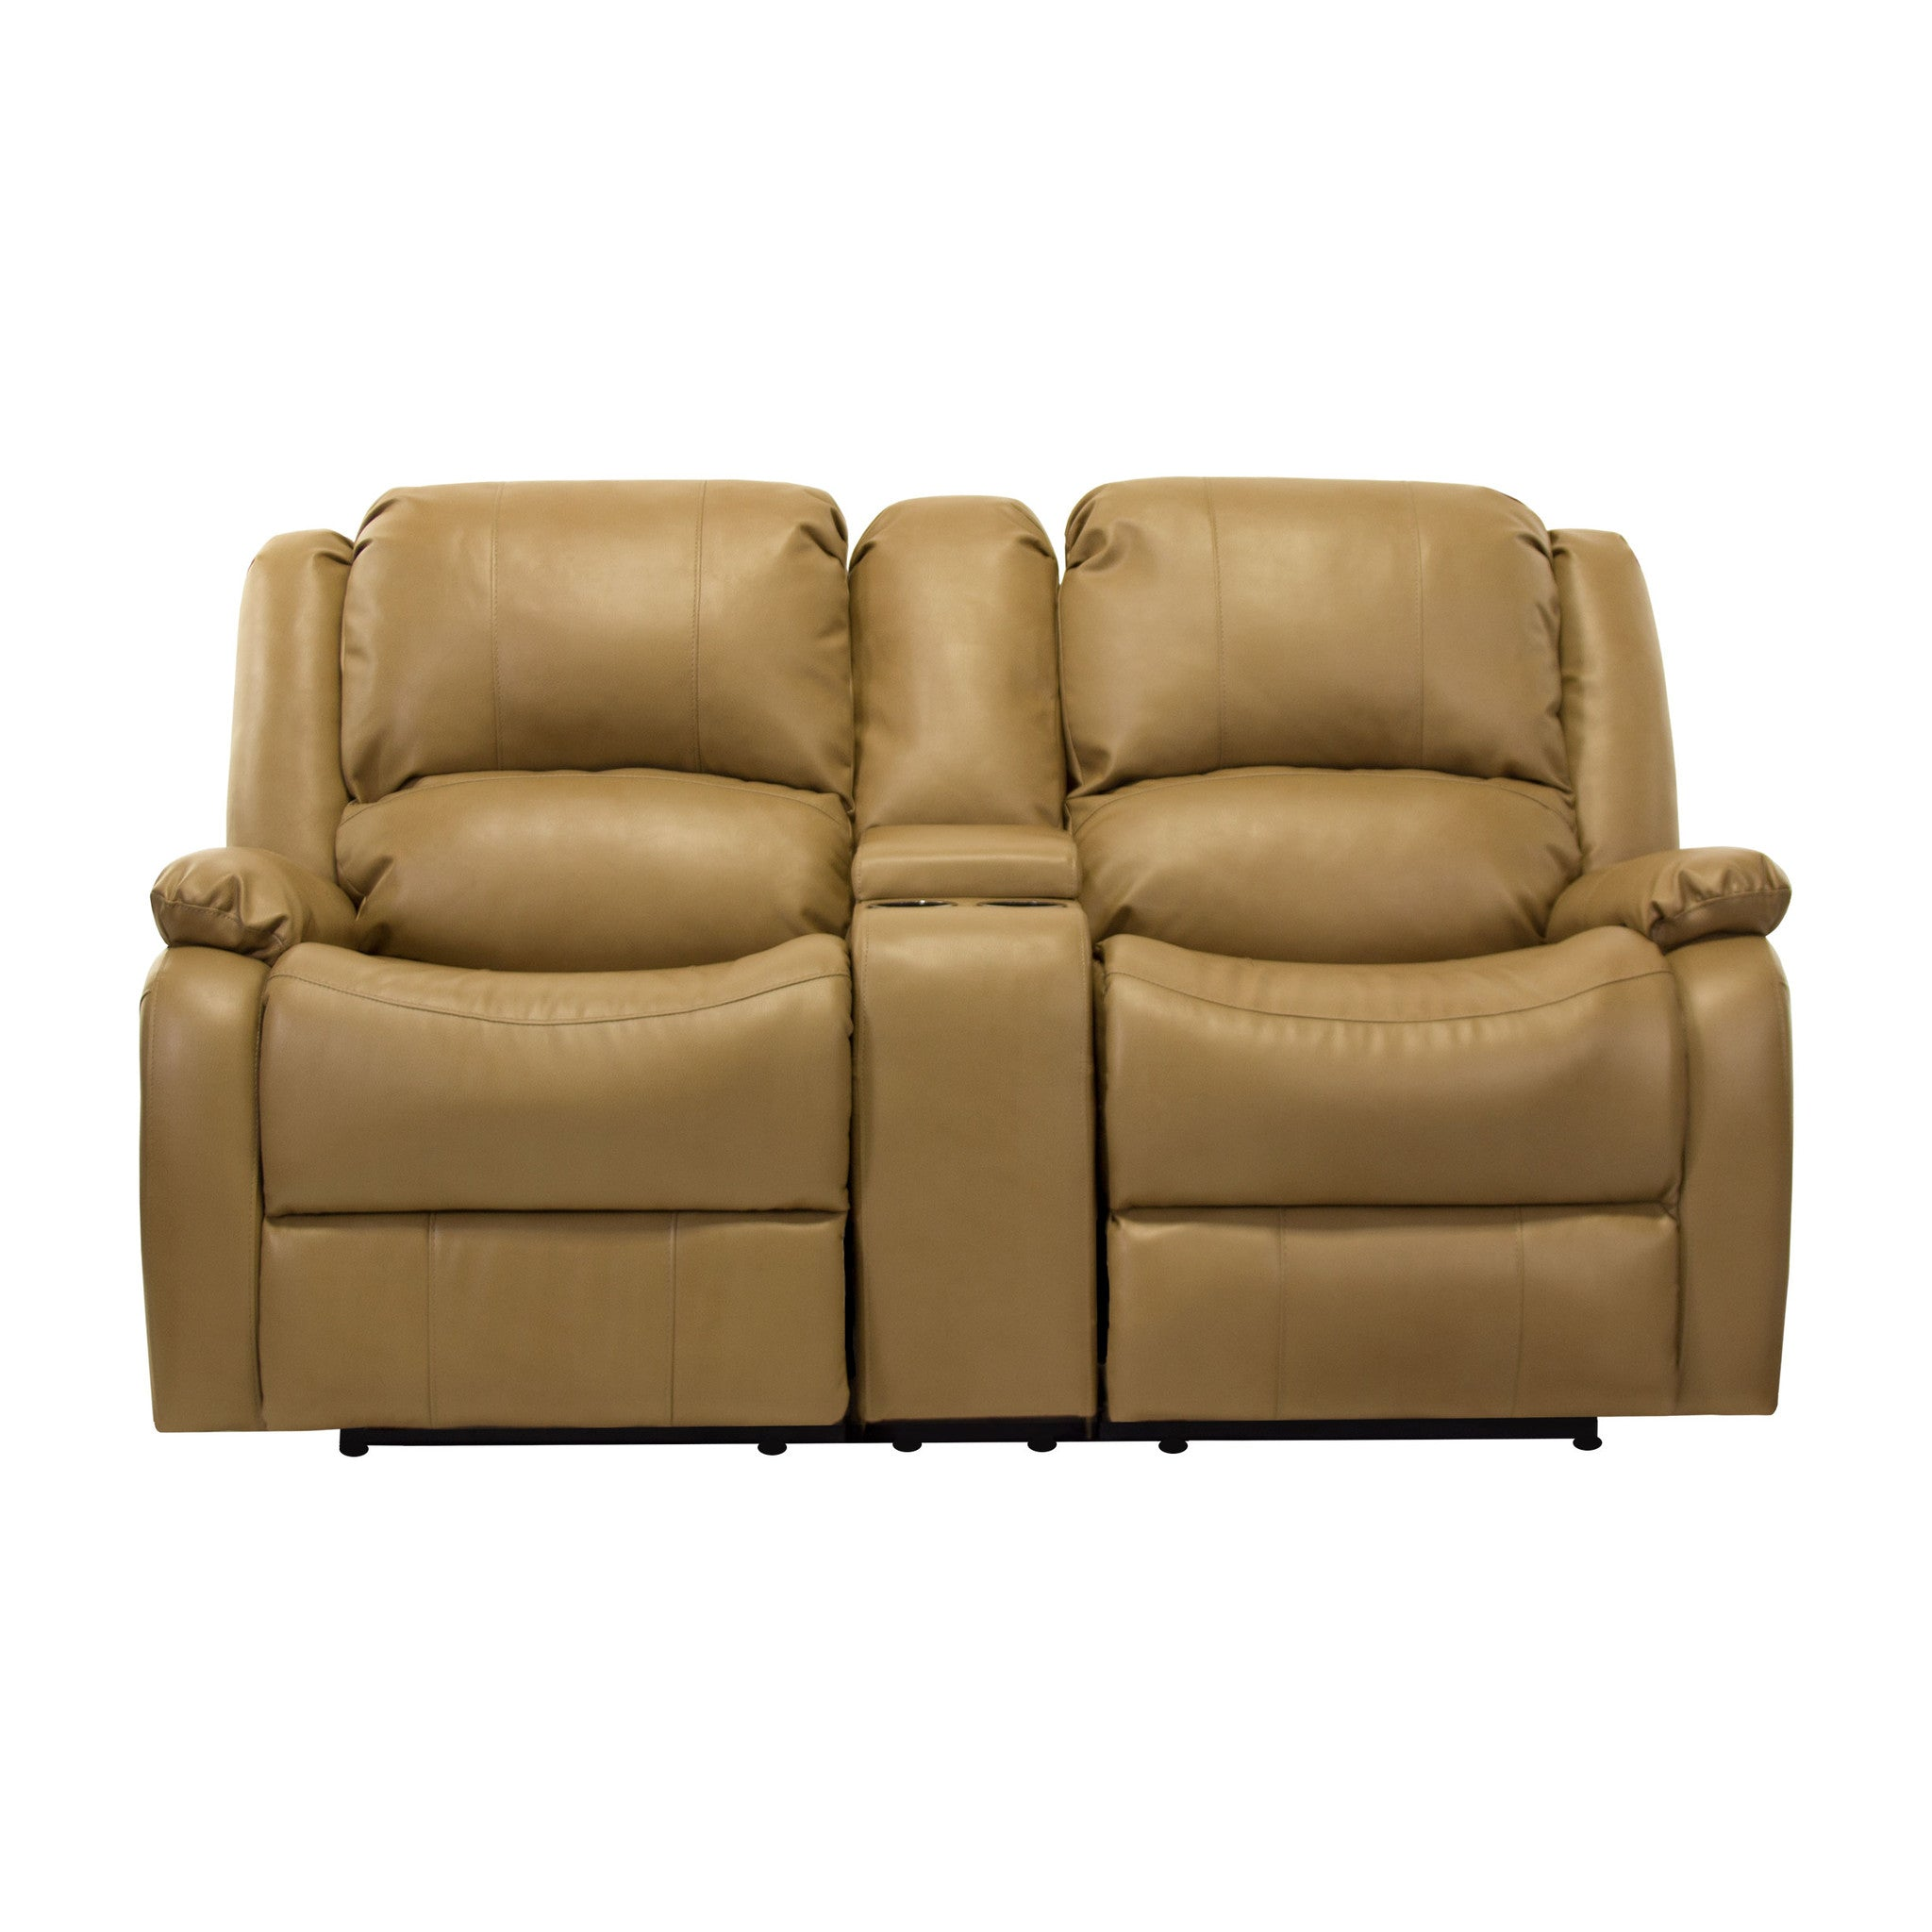 ... RecPro Charles 67\  Double RV Wall Hugger Recliner Sofa w/ Console Toffee (Available ...  sc 1 st  RestoreRV.com : rv double recliner - islam-shia.org